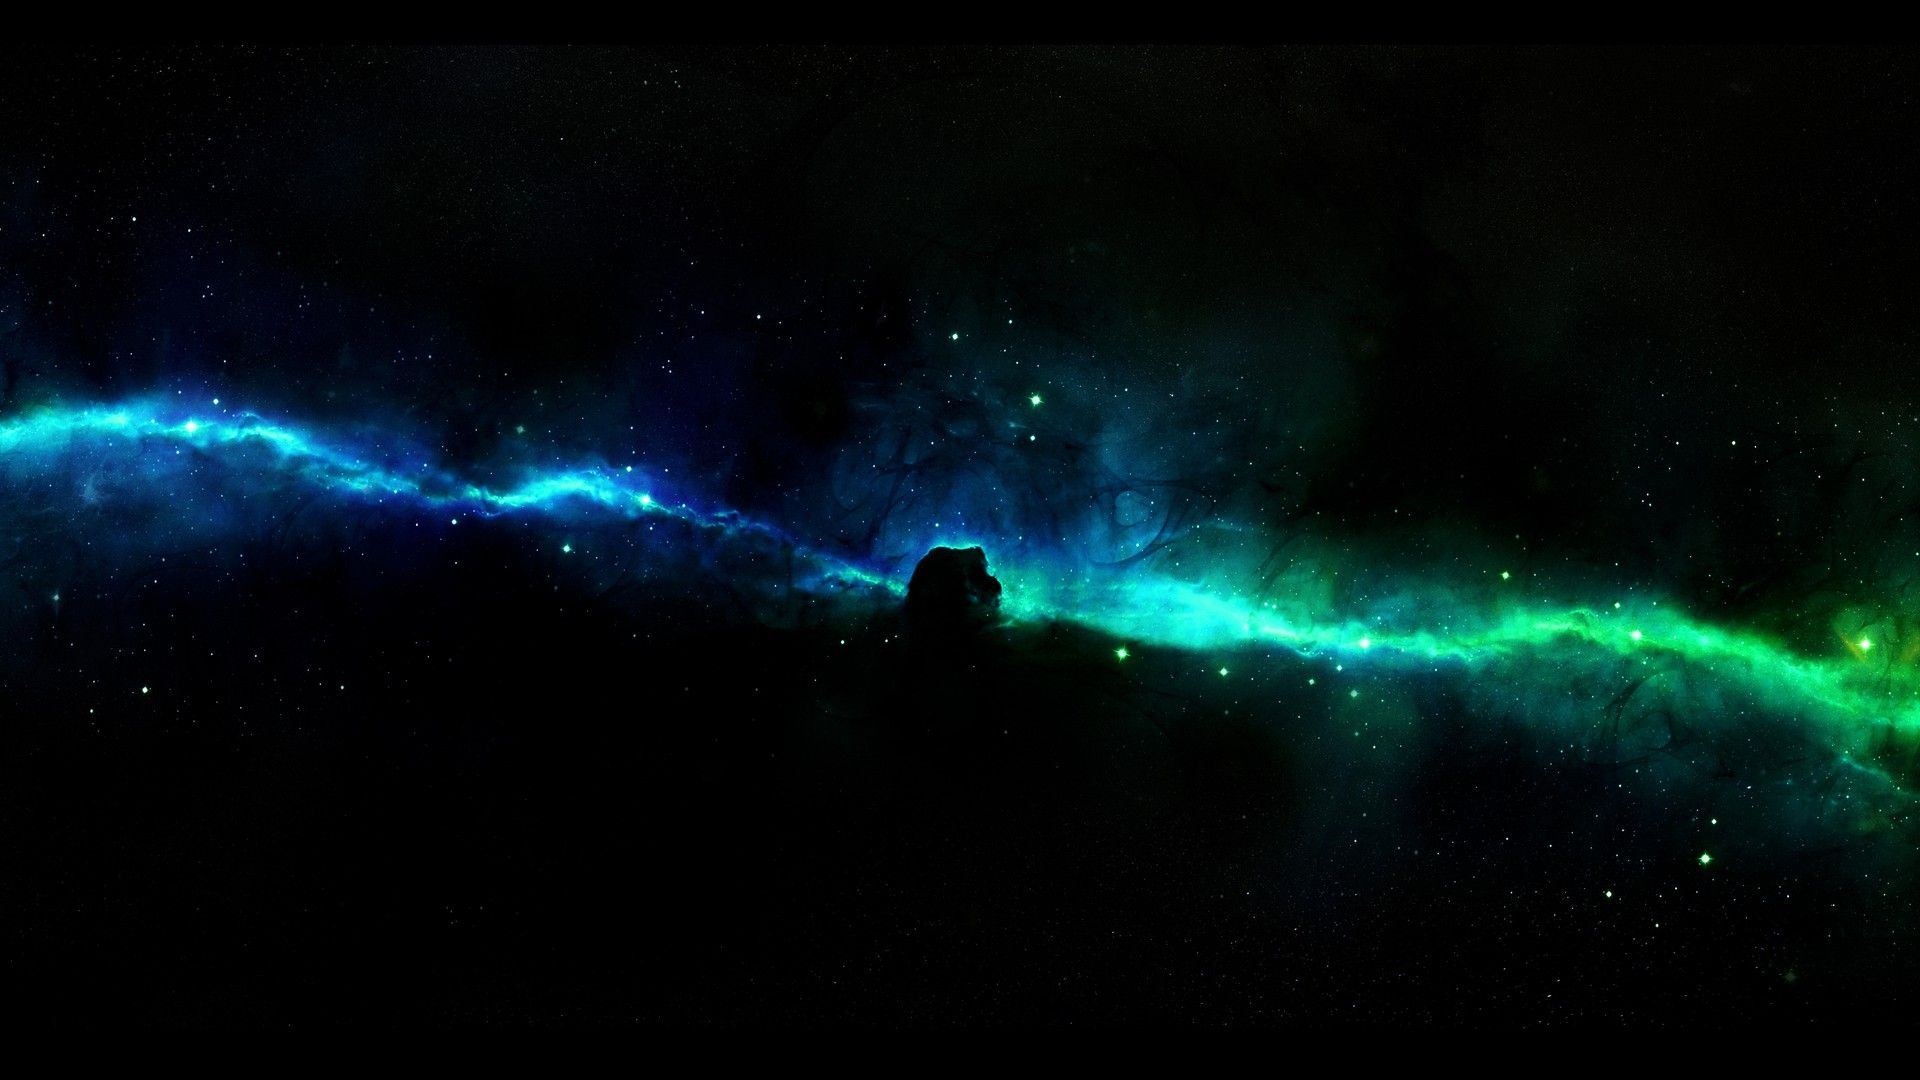 High Resolution Space Image background wallpaper